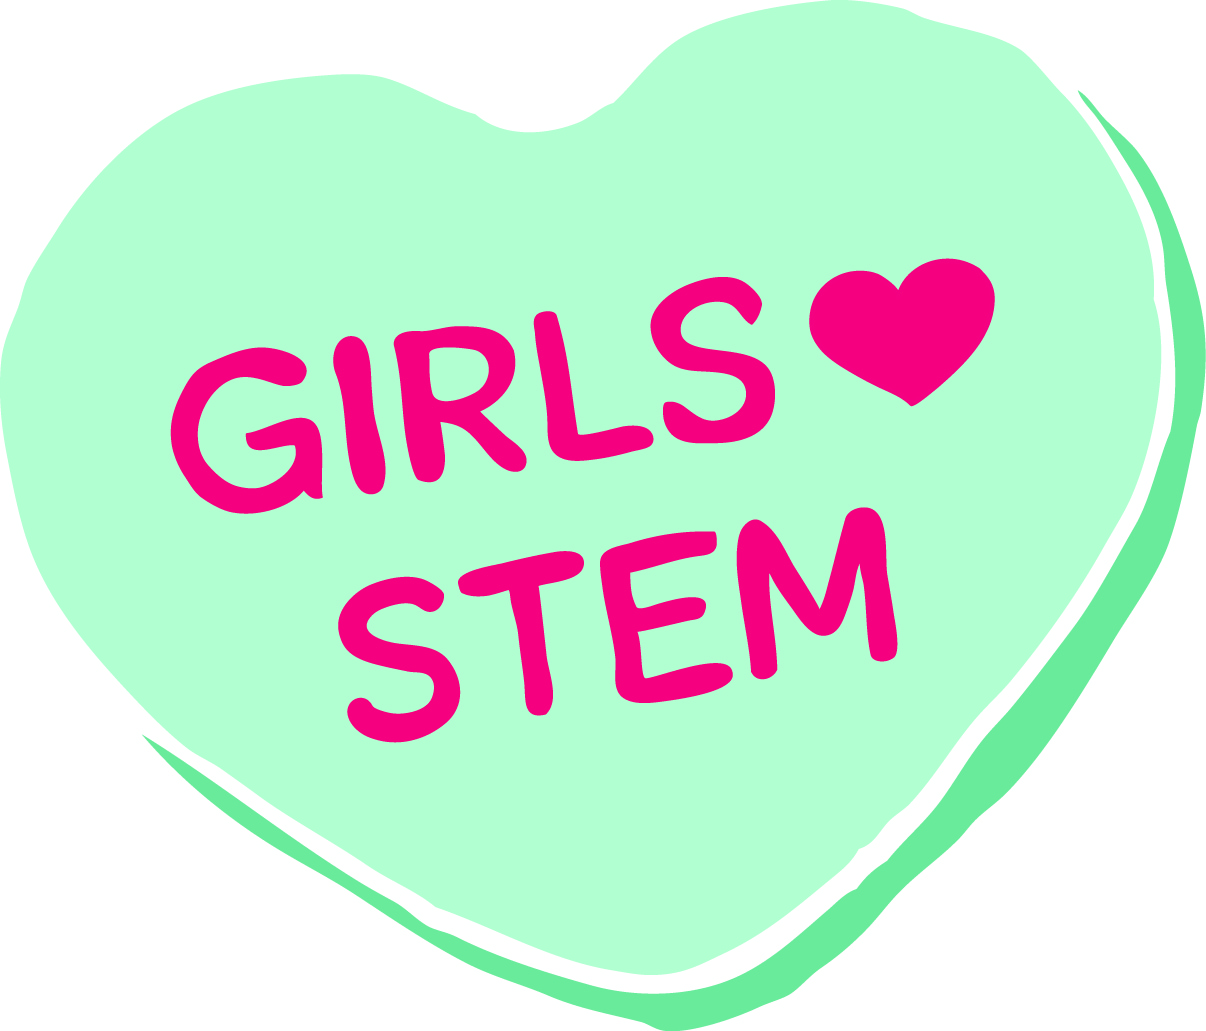 Building America S Future Stem Education Intervention Is: Hot Topic: Girls In Science, Technology, Engineering And